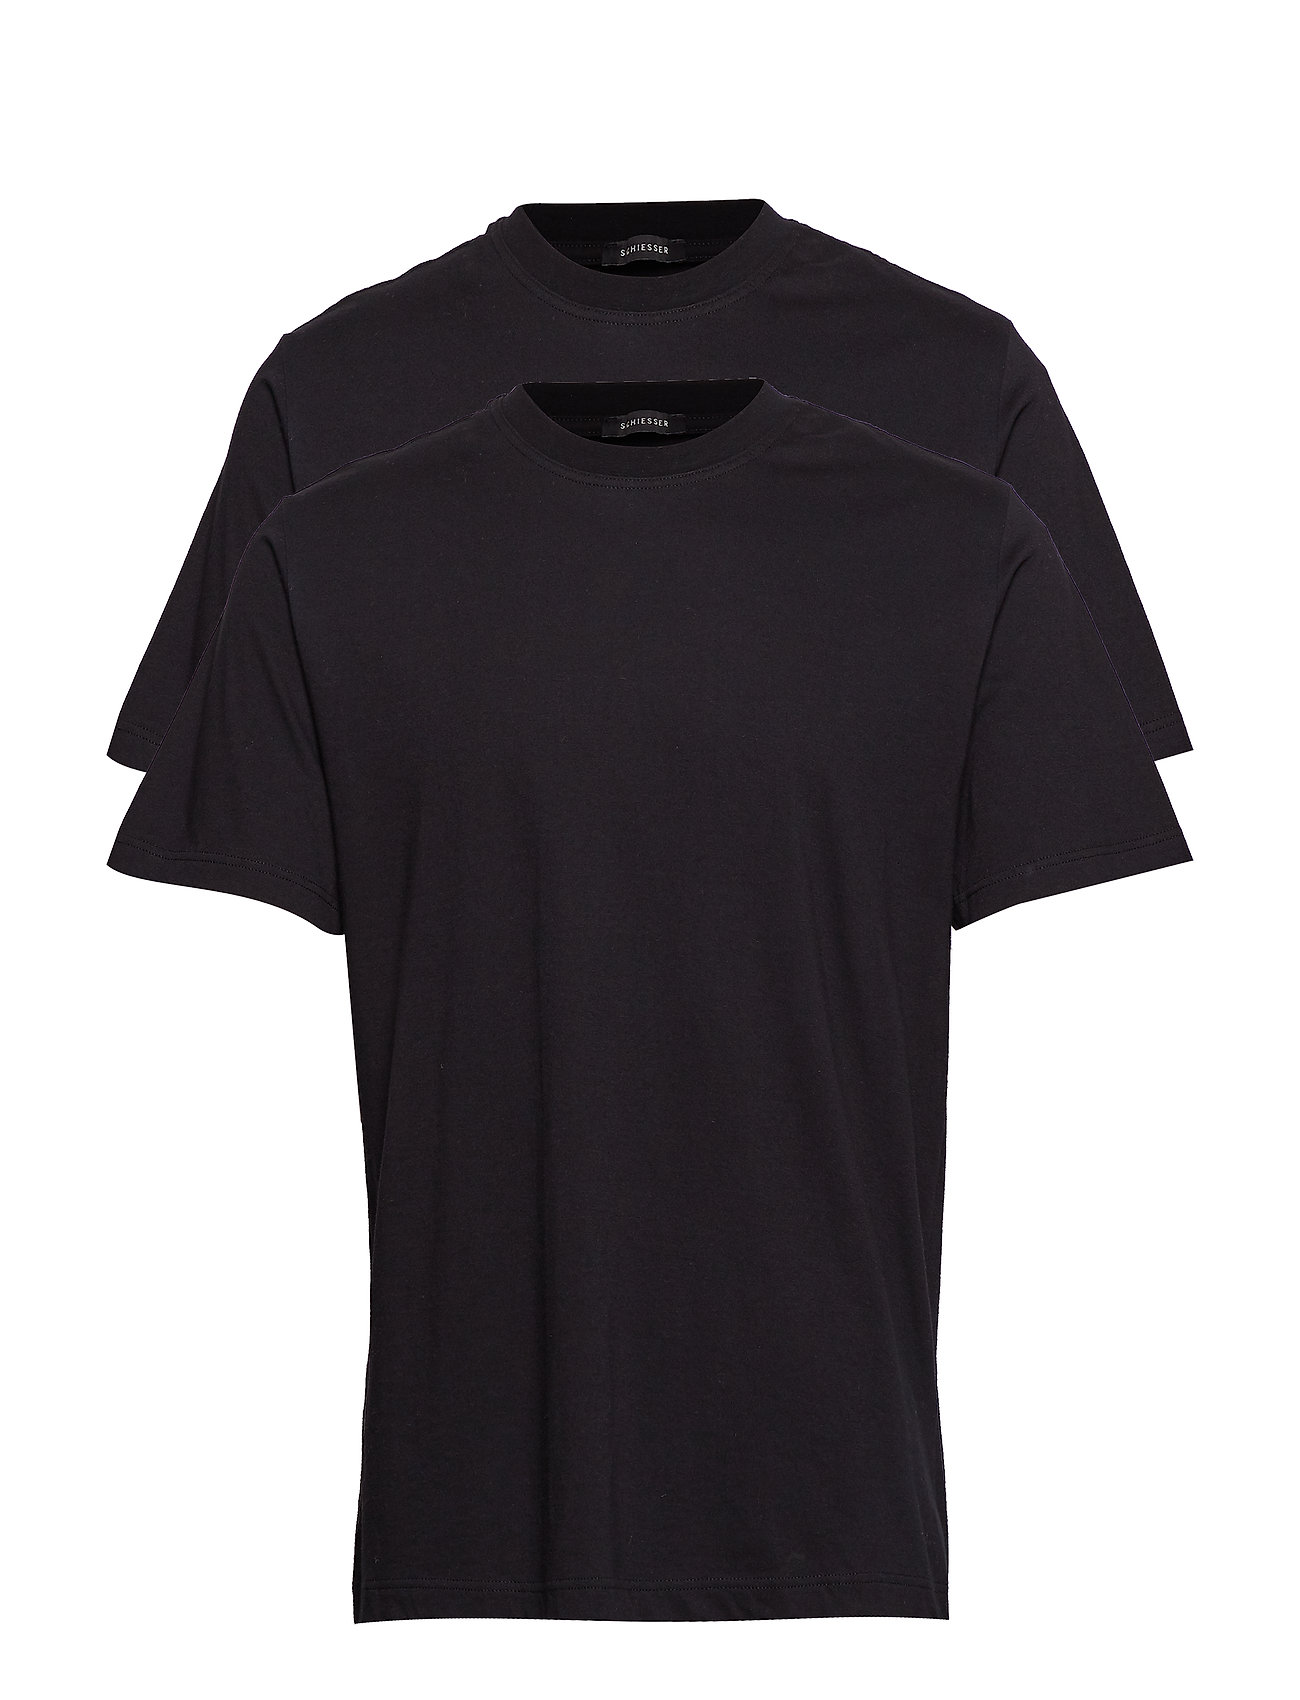 Schiesser Shirt 1/2 - BLACK